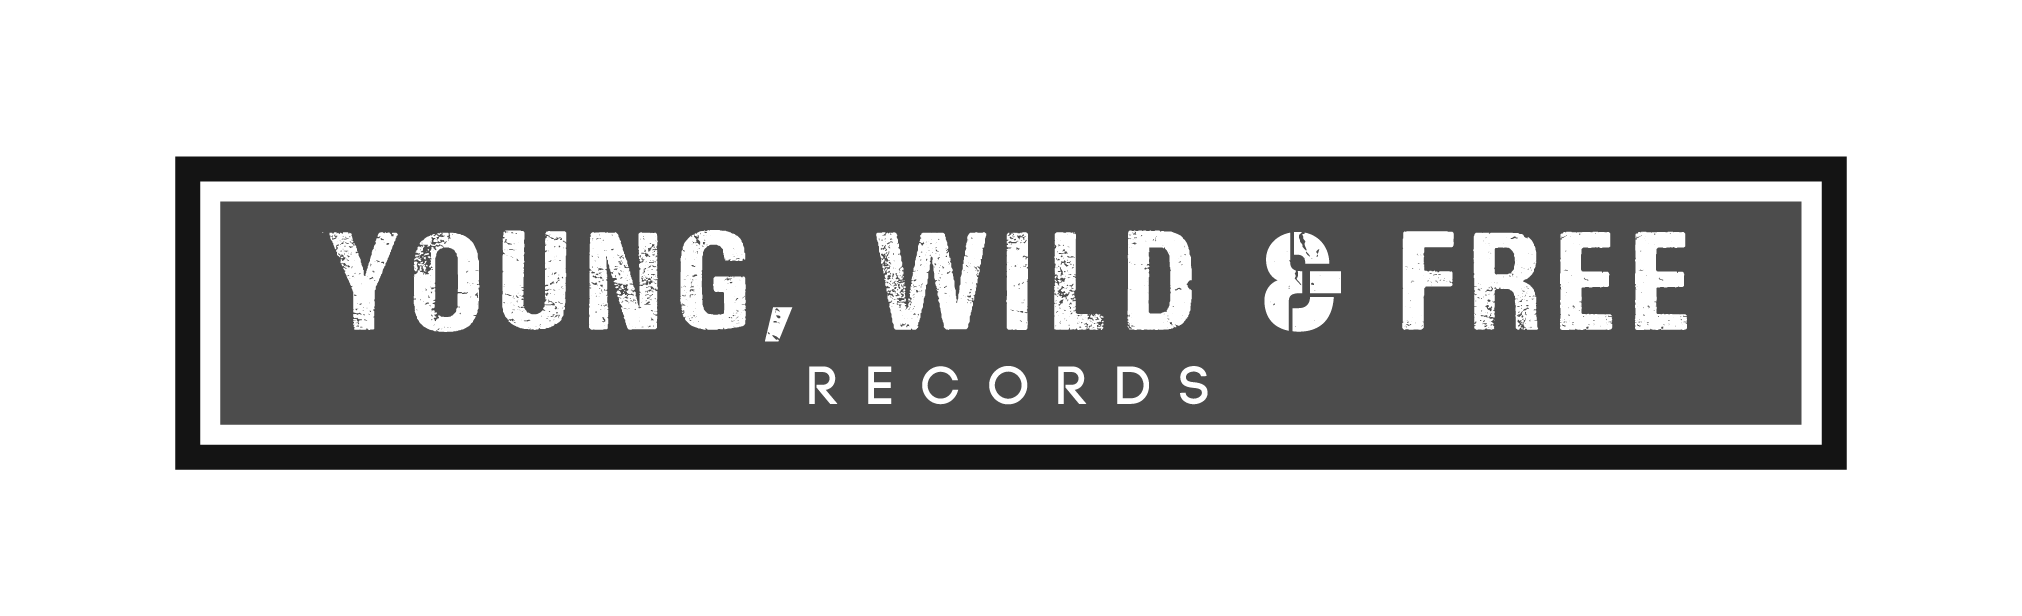 Young, Wild & Free Records